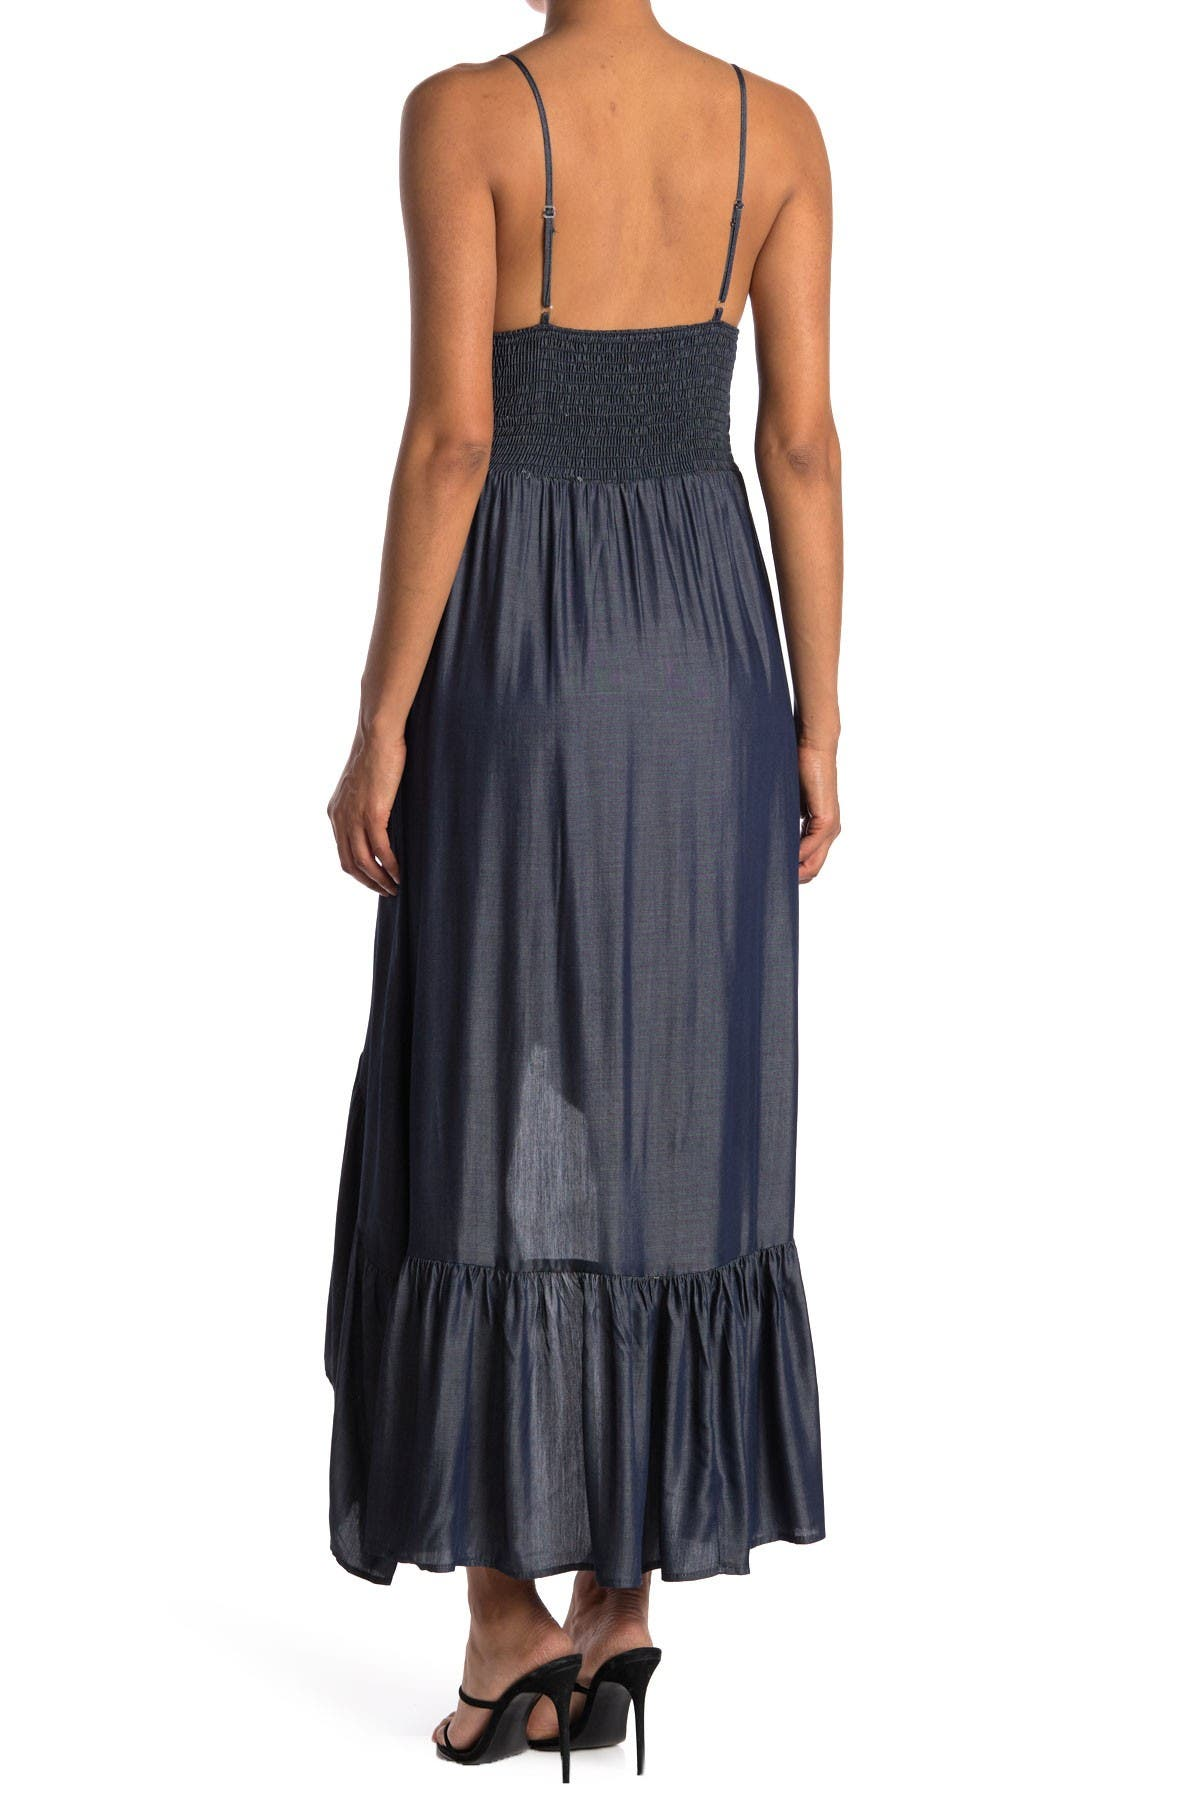 Image of Velvet Torch V-Neck High/Low Midi Dress